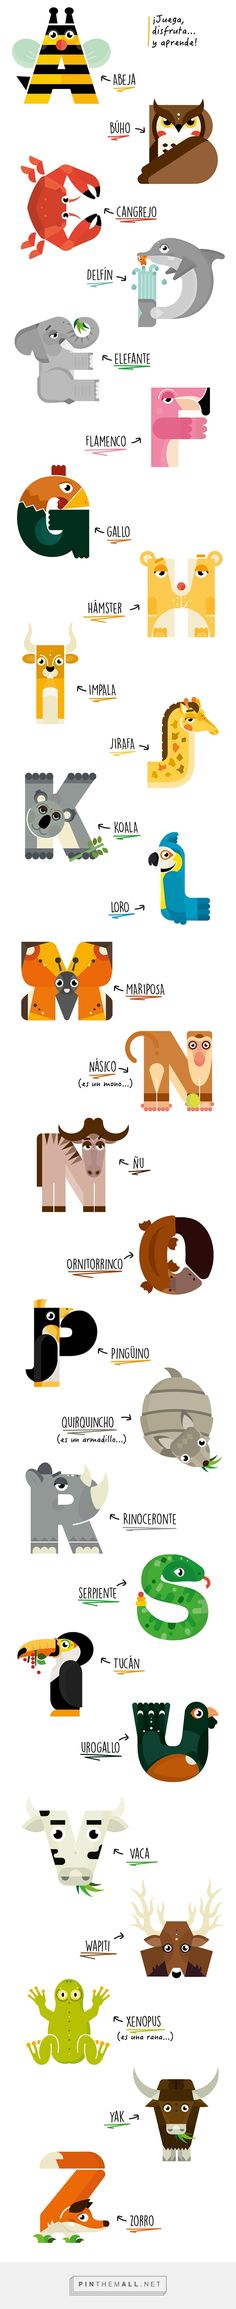 Animalario - Animal Alphabet | Fivestar Branding – Design and Branding Agency & Inspiration Gallery